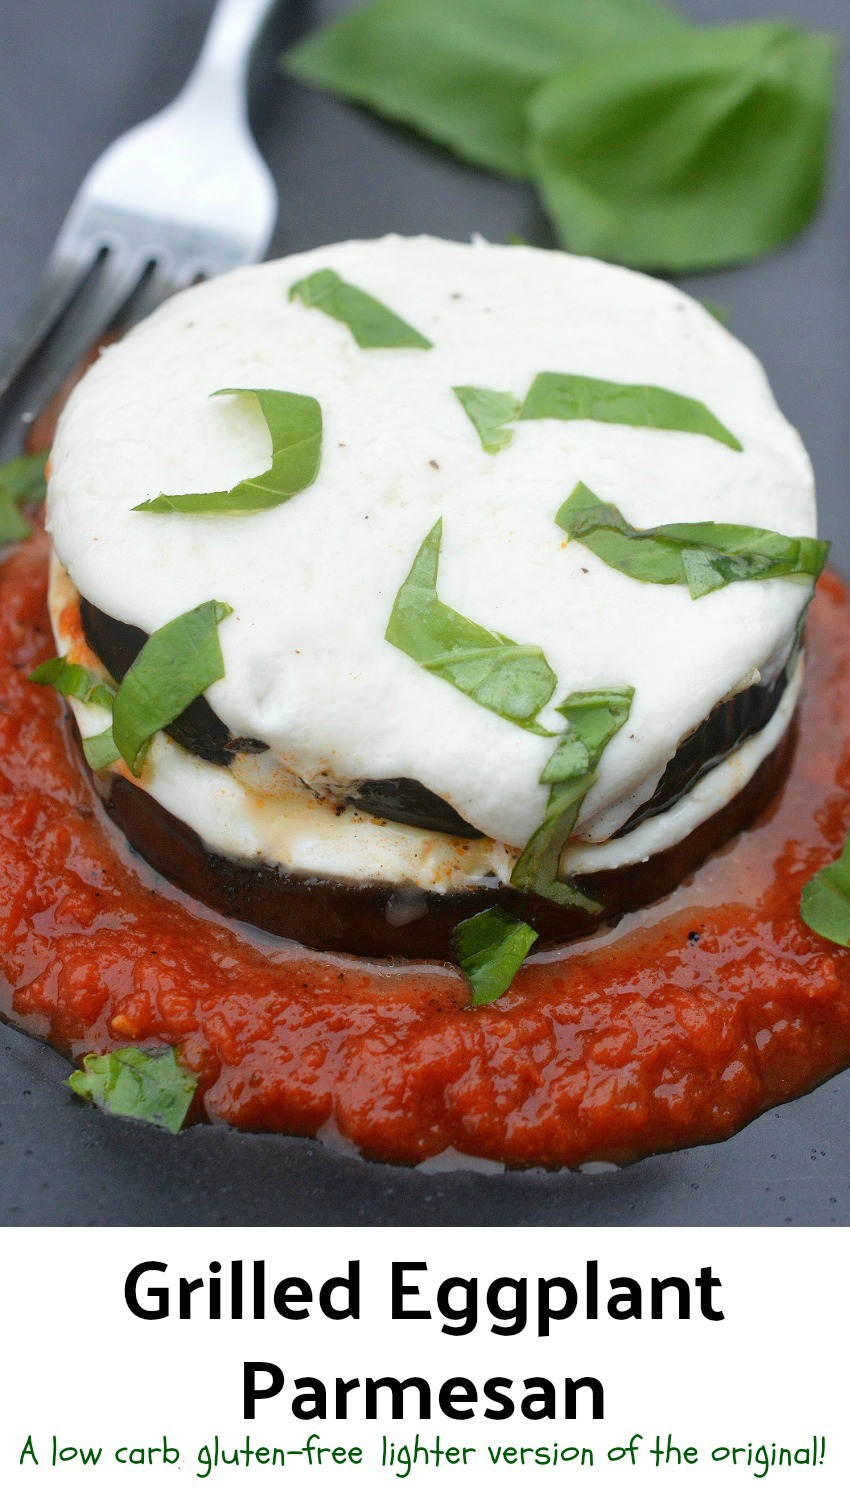 Grilled Eggplant Parmesan. A classic dish lightened up. Low carb & gluten free.